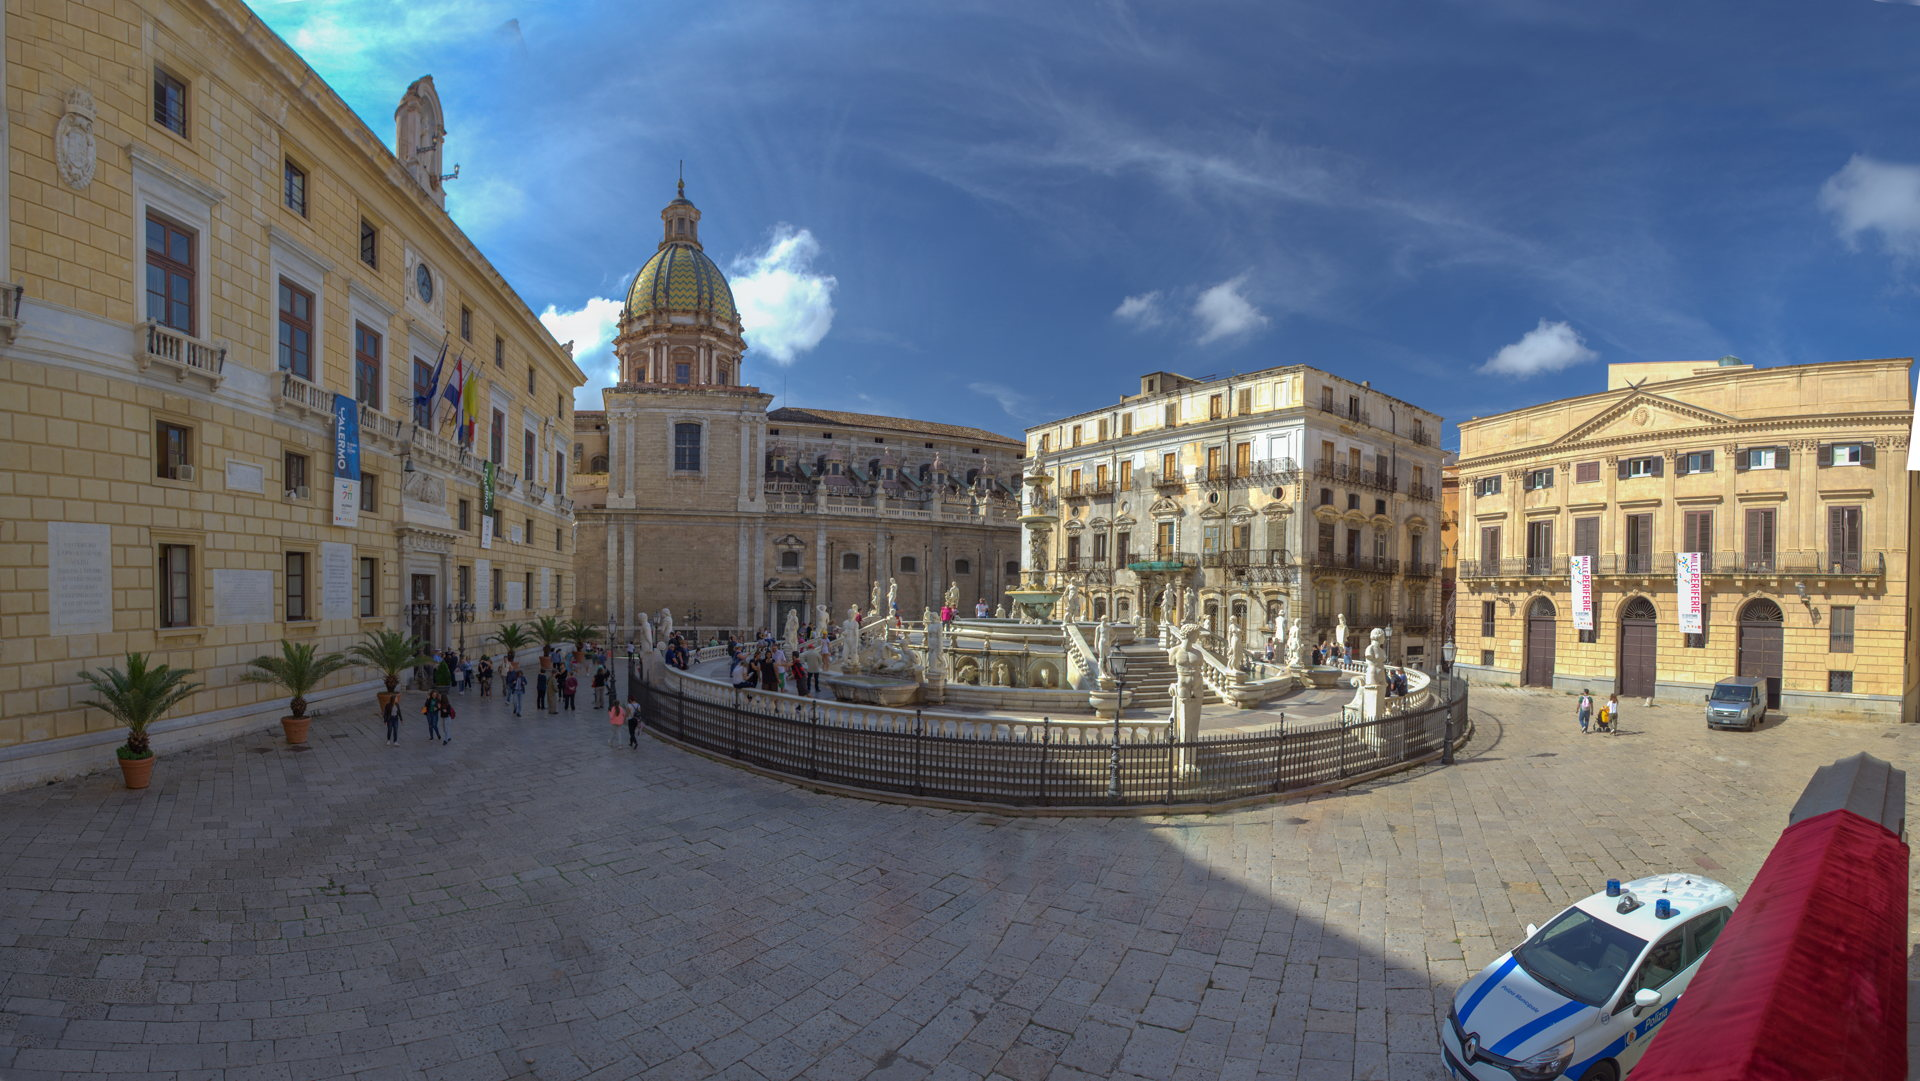 Piazza della vergogna, piazza pretoria, square of shame, palermo square, palermo naked, palermo statues, palermo travel, best places to visit in sicily, sicily, italy, europe, beautiful square in palermo, what to do in palermo, what to do in sicily